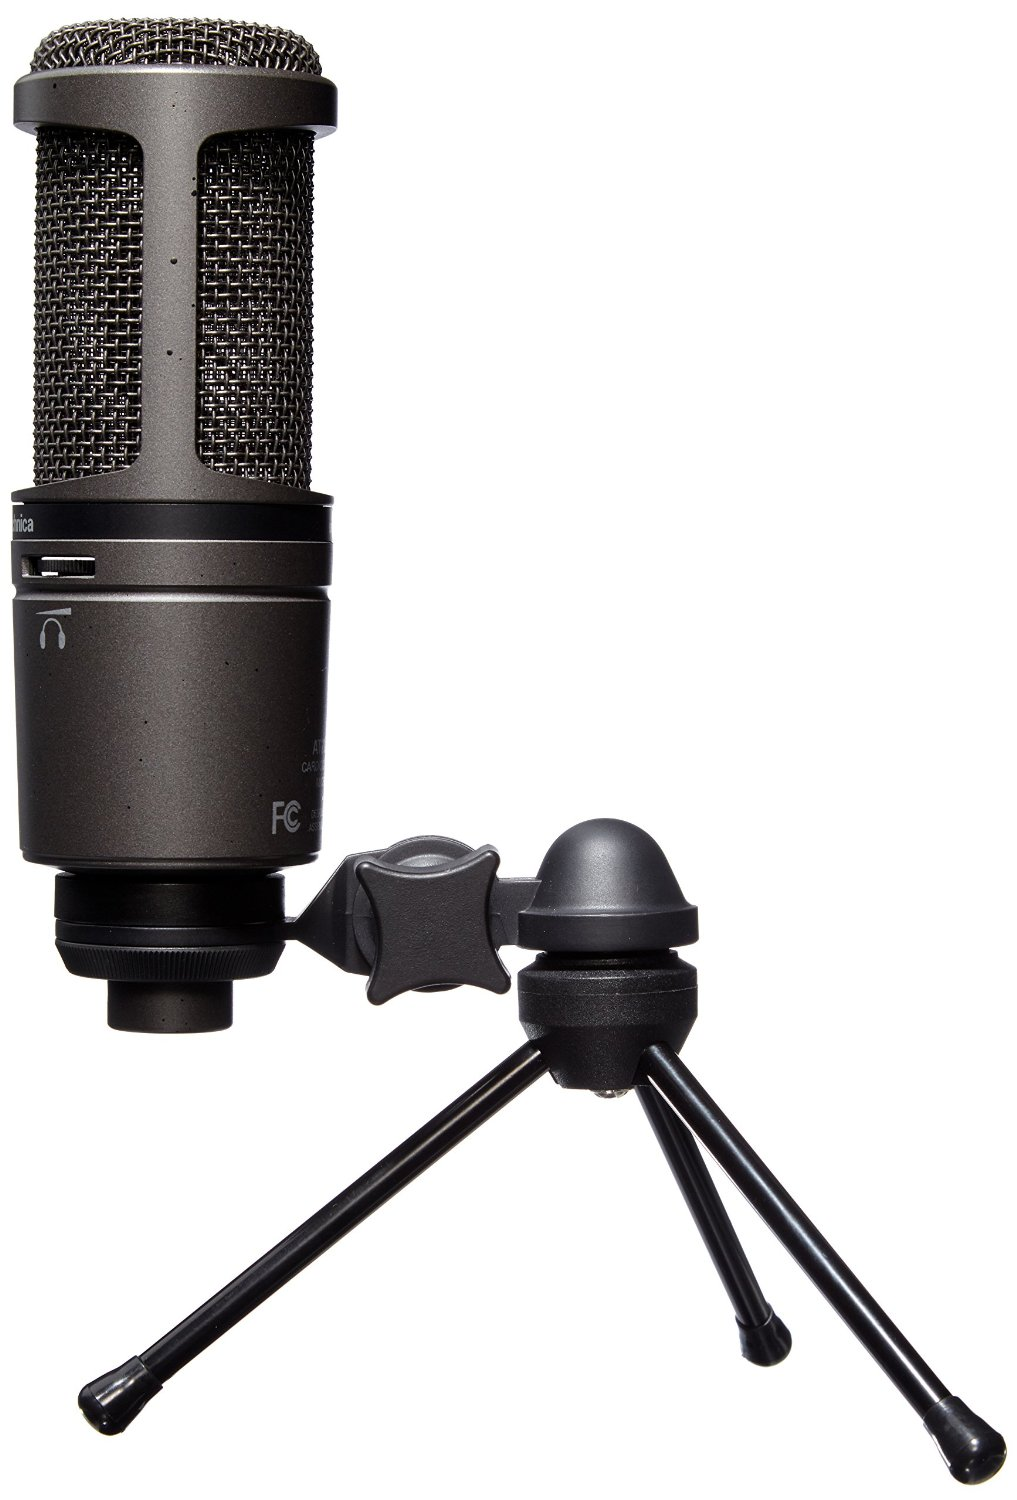 Best Budget Microphones for Podcasting - Audio-Technica AT2020USB PLUS Cardioid Condenser USB Microphone